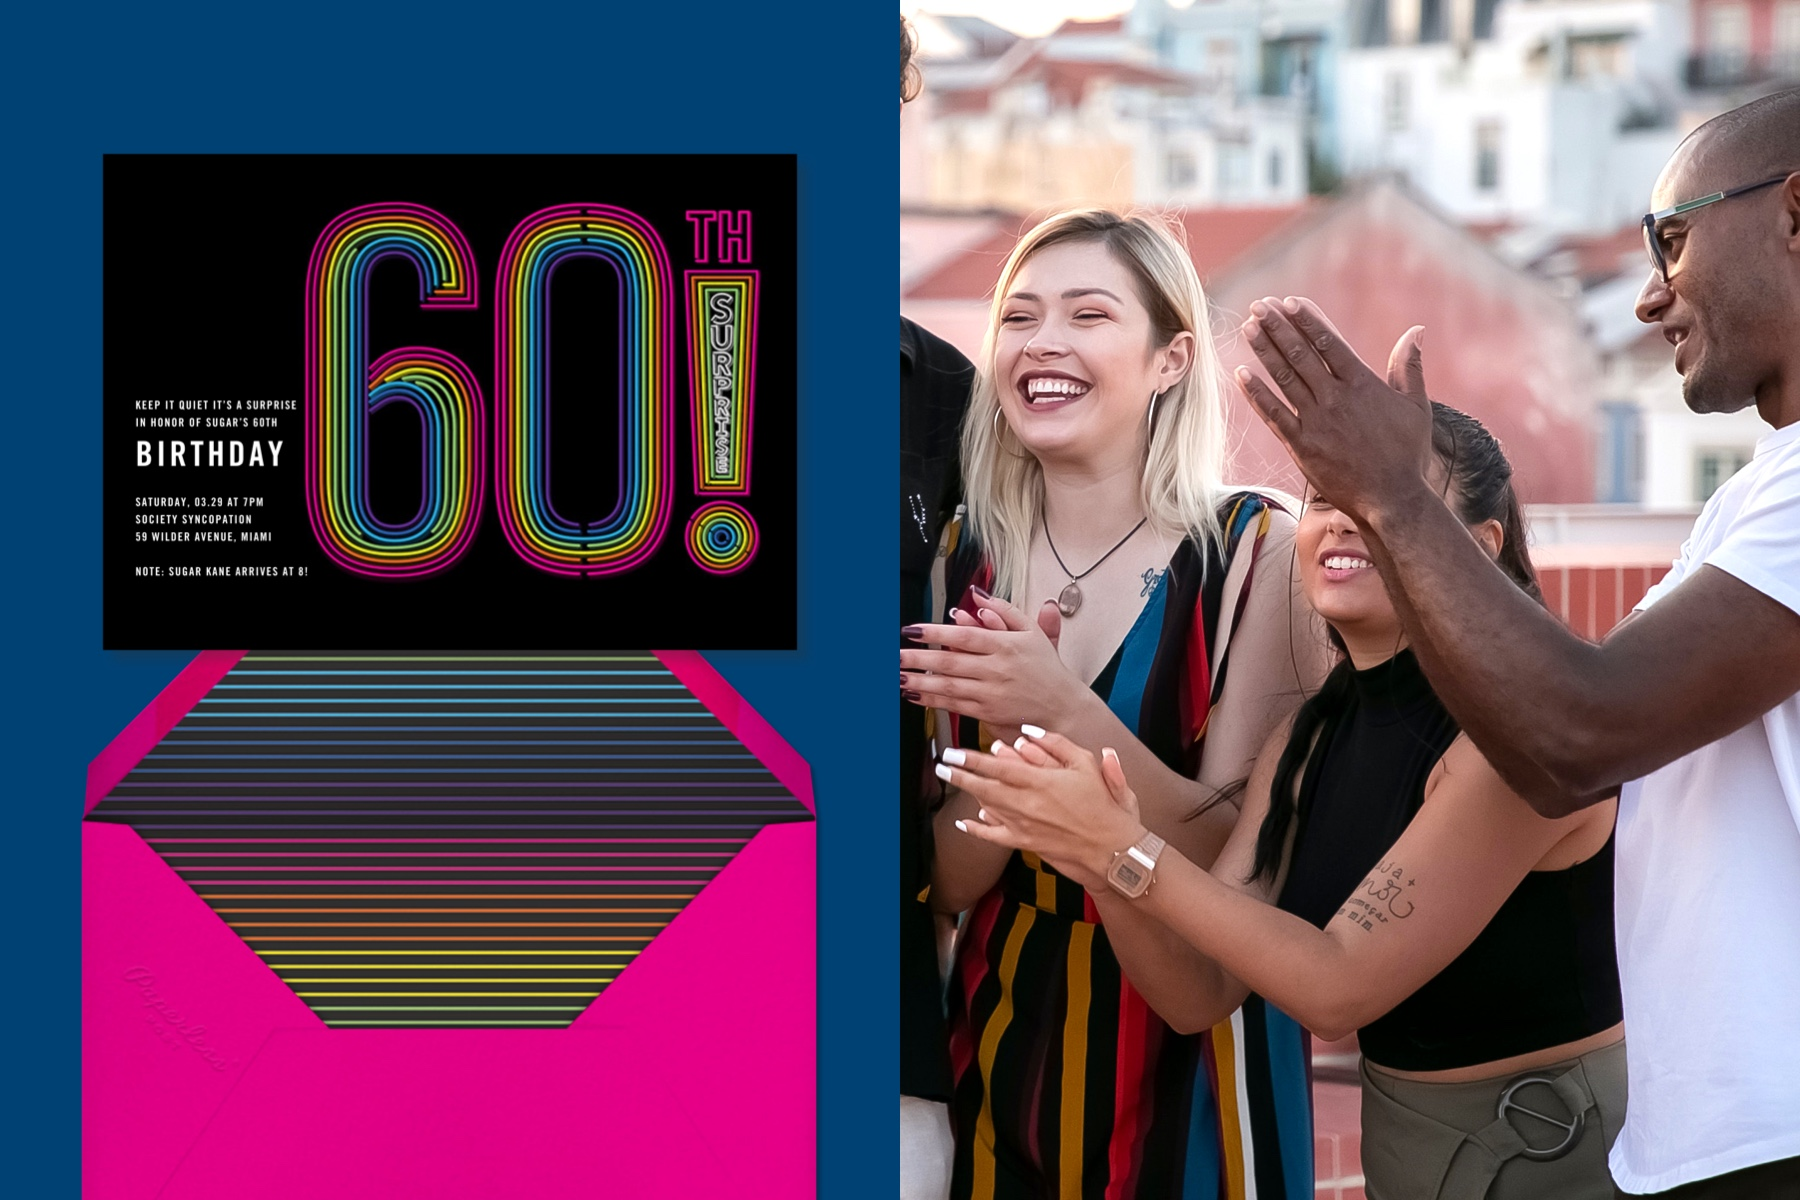 """Left: """"Neon Exclamation Surprise (60)"""" invitation by Paperless Post featuring graphic text treatments on the word """"60th!"""".   Right: Photo of three young people clapping their hands on a rooftop."""